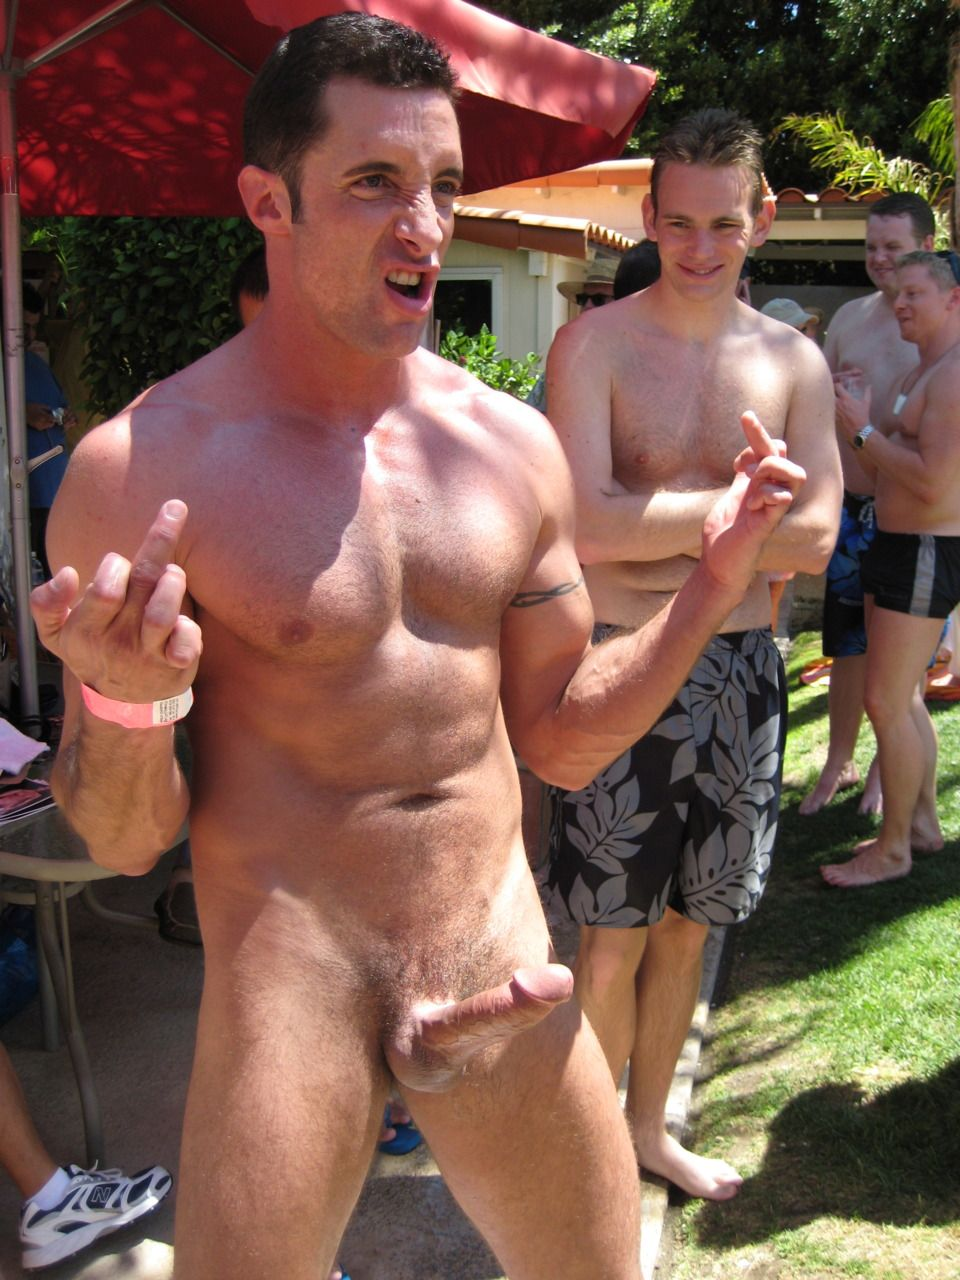 Nudist boy gets erection hot!